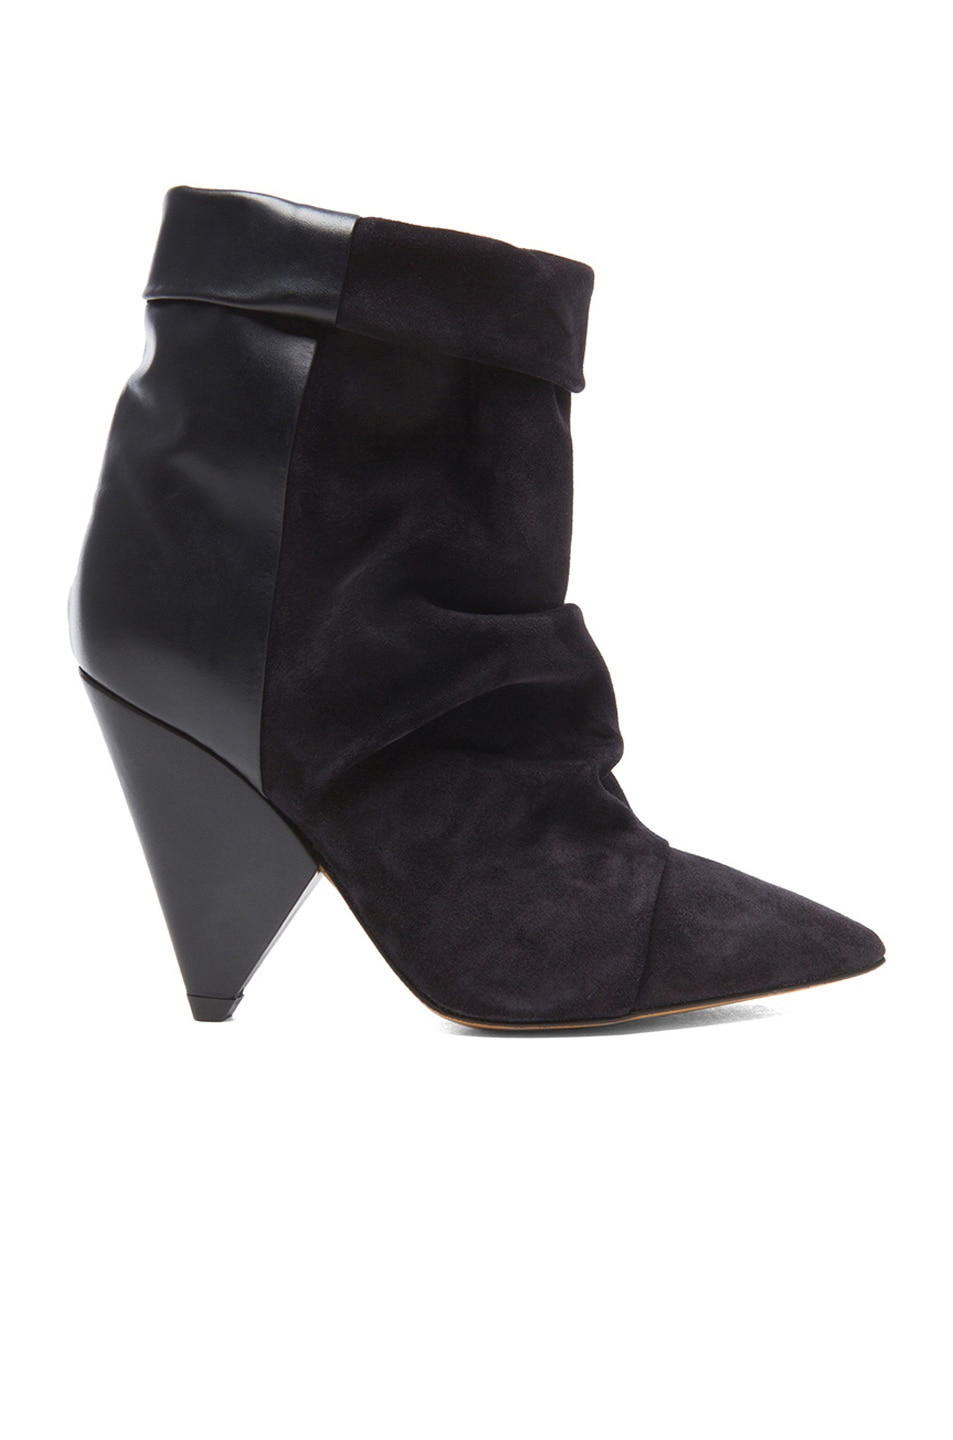 Image 1 of Isabel Marant Andrew Calfskin Velvet Leather Boots in Black